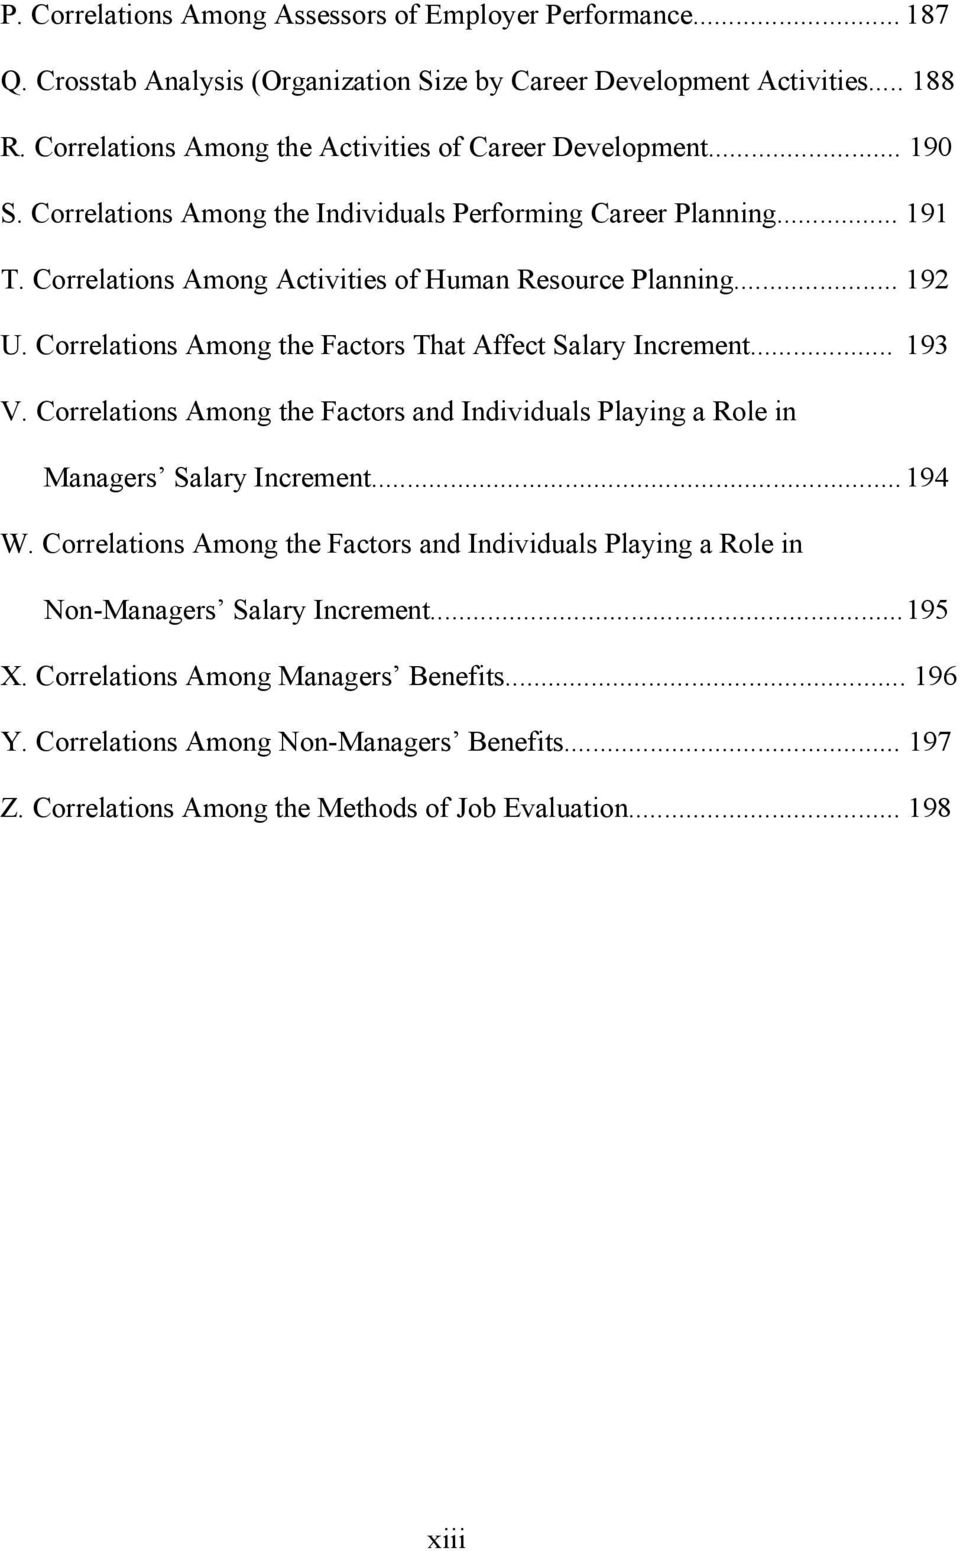 .. 192 U. Correlations Among the Factors That Affect Salary Increment... 193 V. Correlations Among the Factors and Individuals Playing a Role in Managers Salary Increment... 194 W.